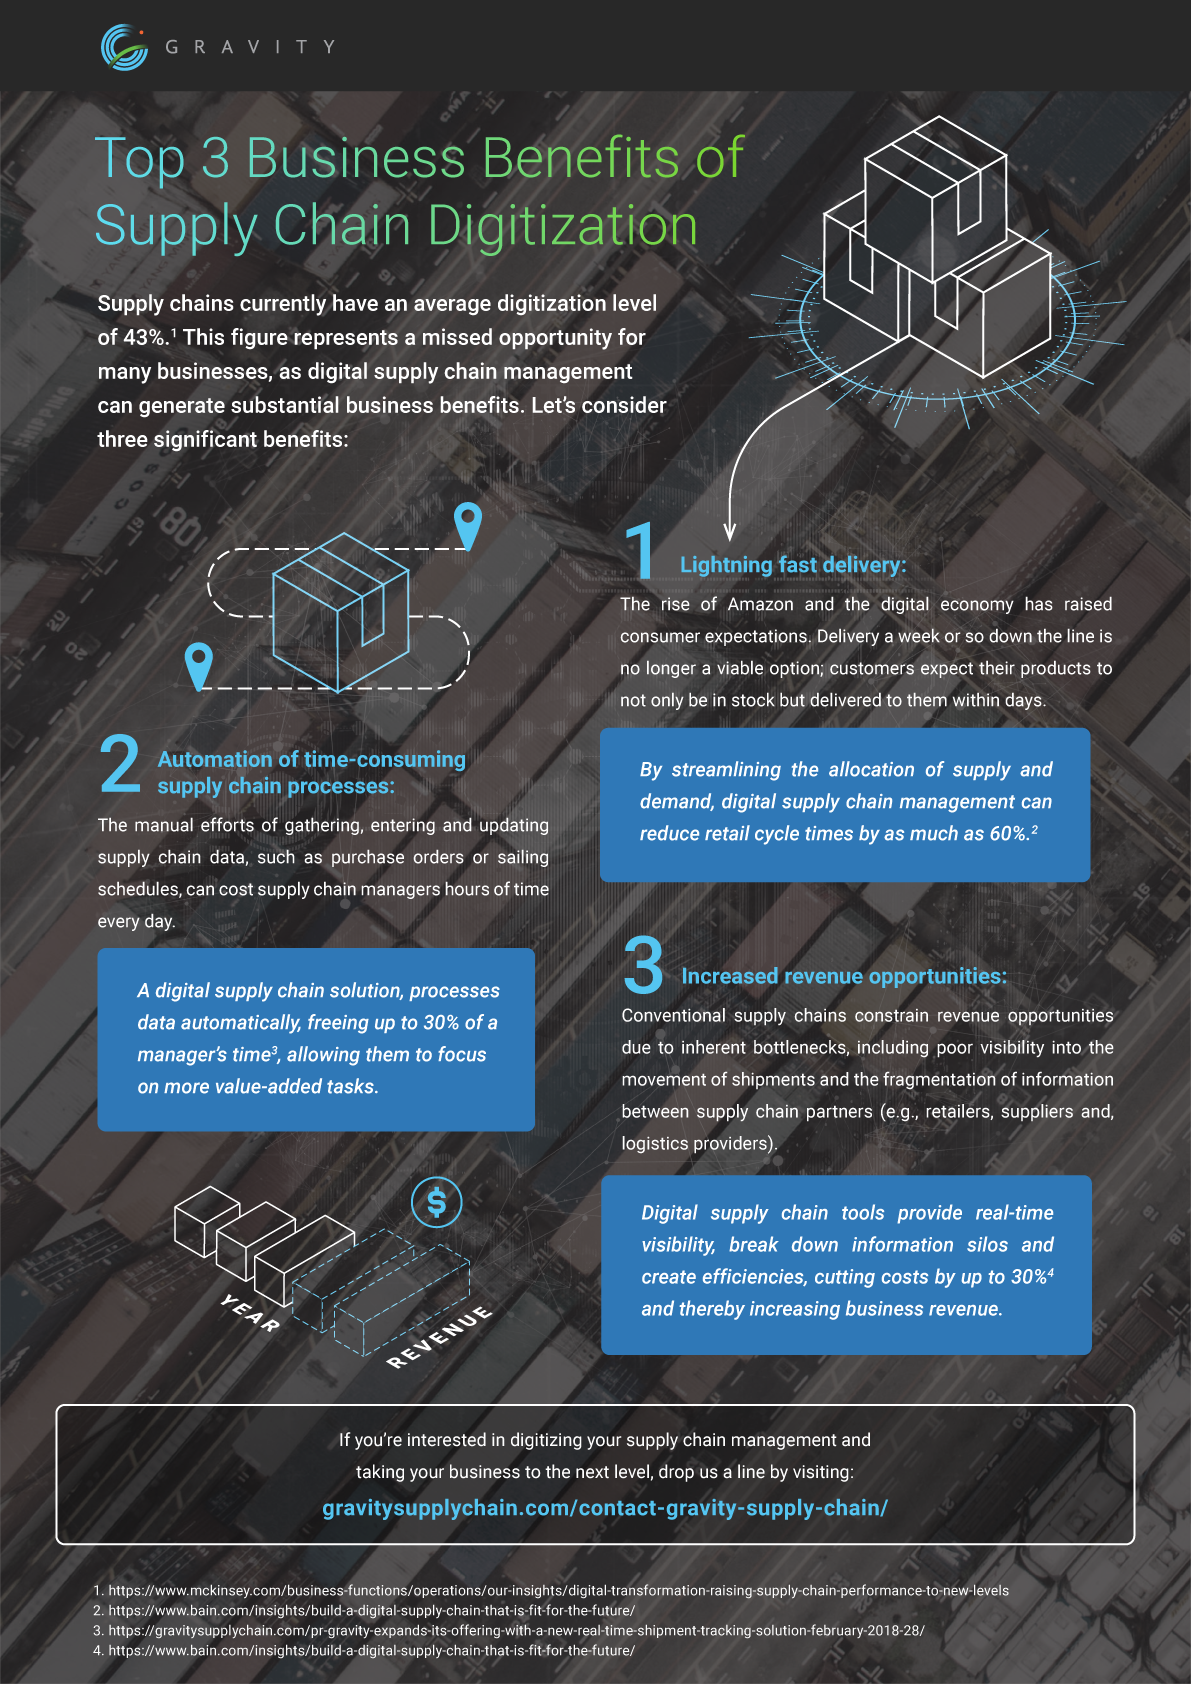 Top 3 Business Benefits of Supply Chain Digitization